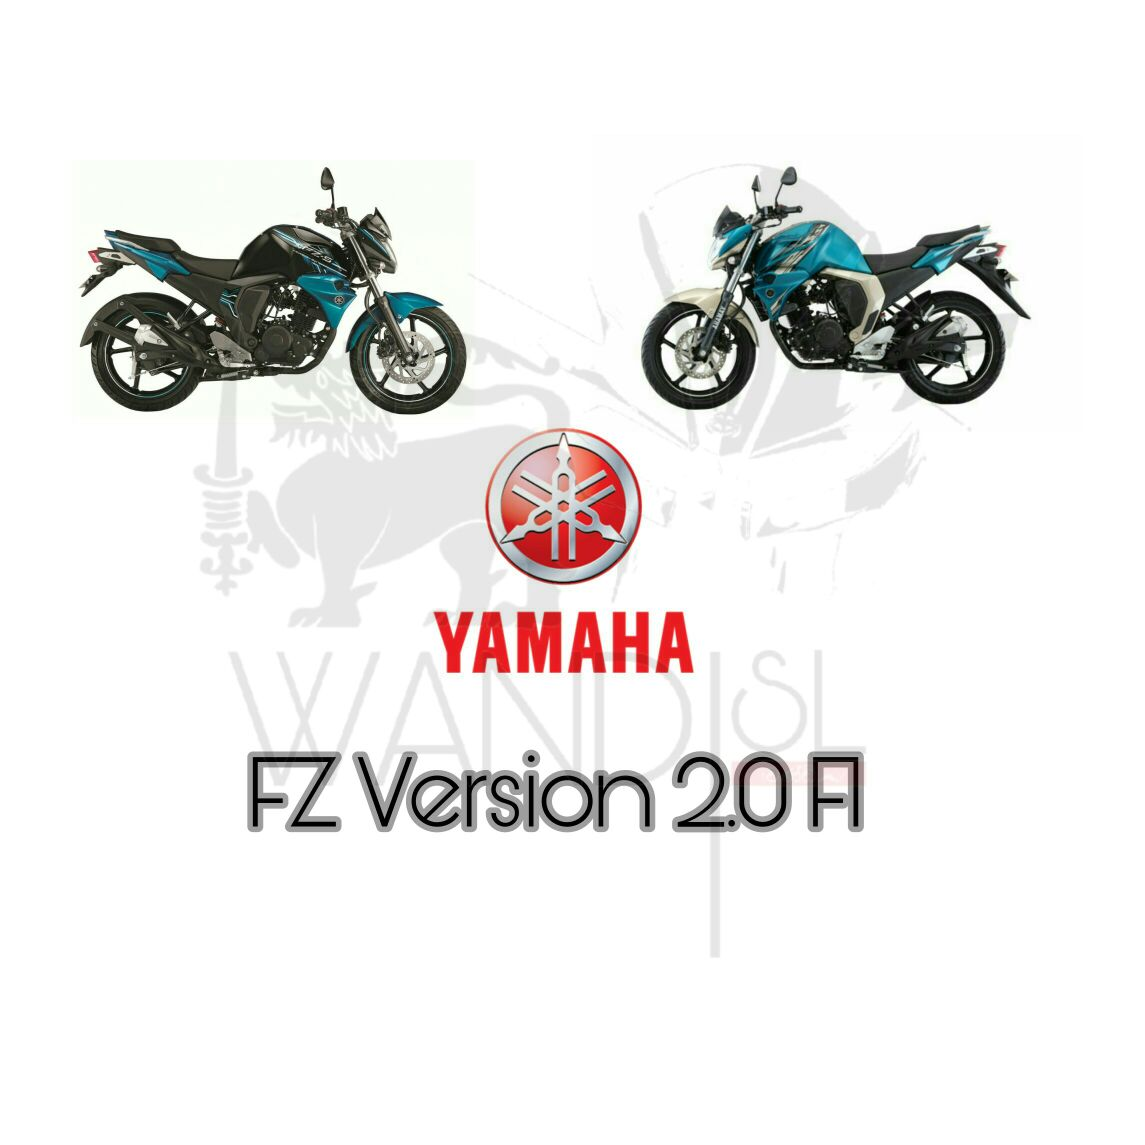 60 Yamaha Fz Version 2 0 Fi